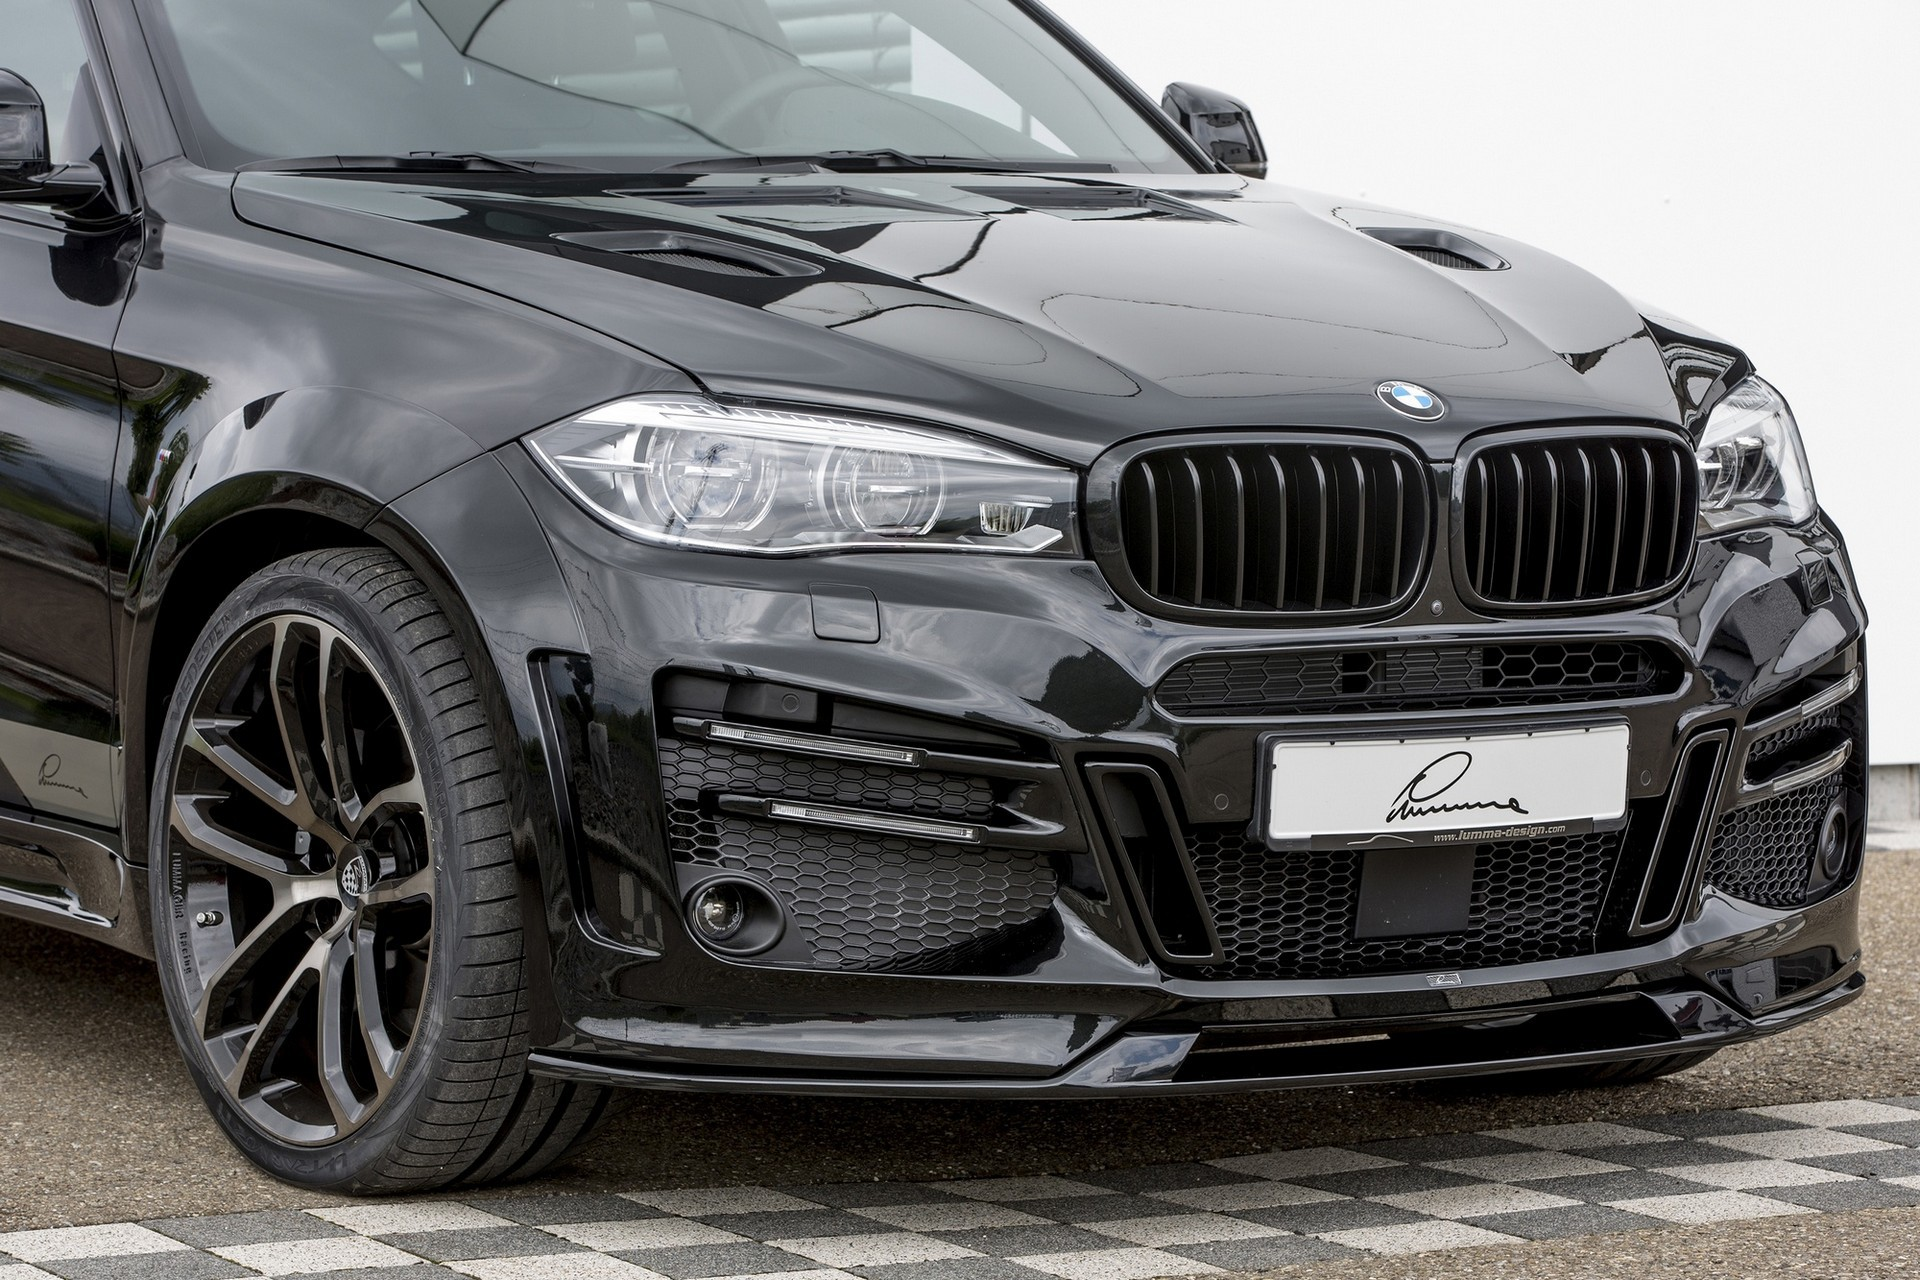 Pictures Of BMW X6 Tuning